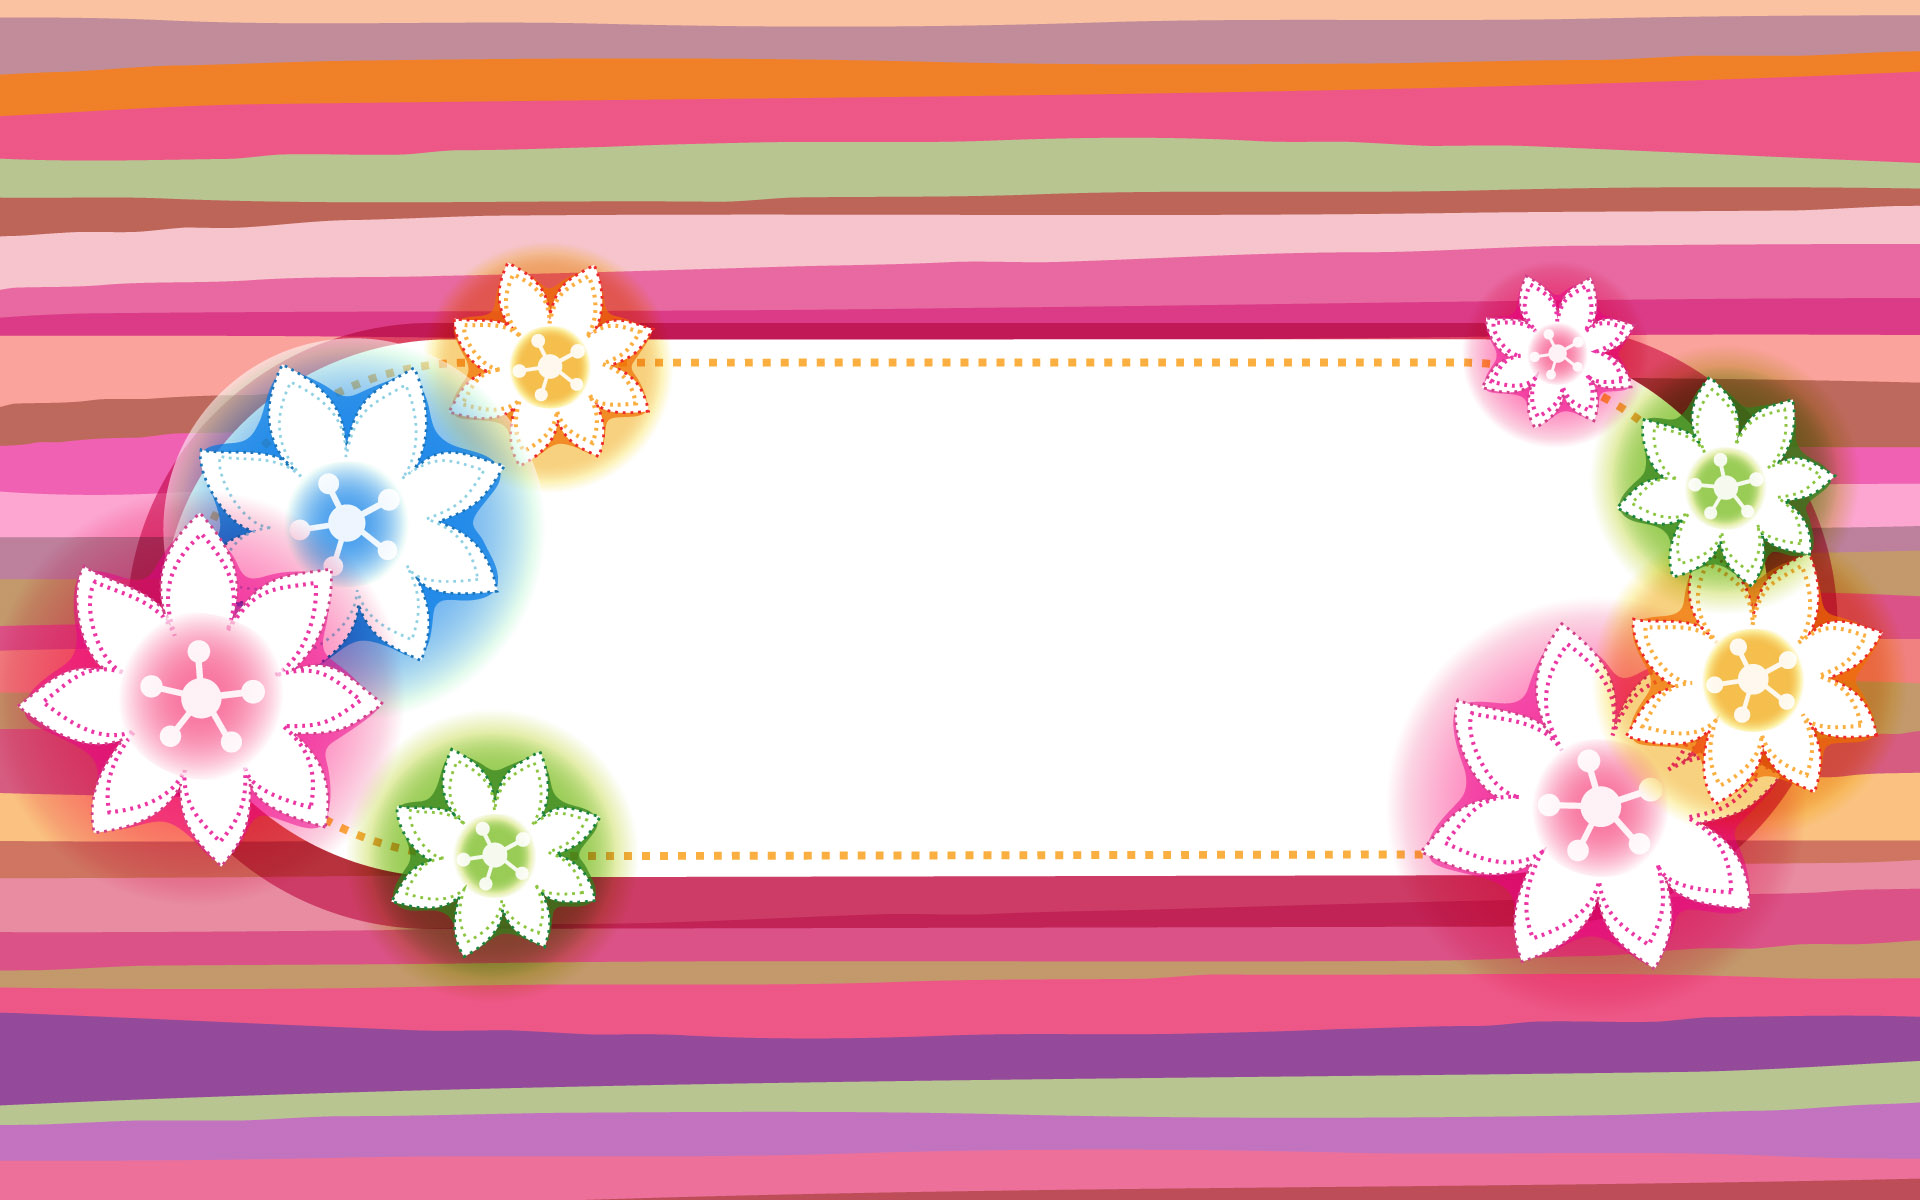 Colorful high-resolution background 23823